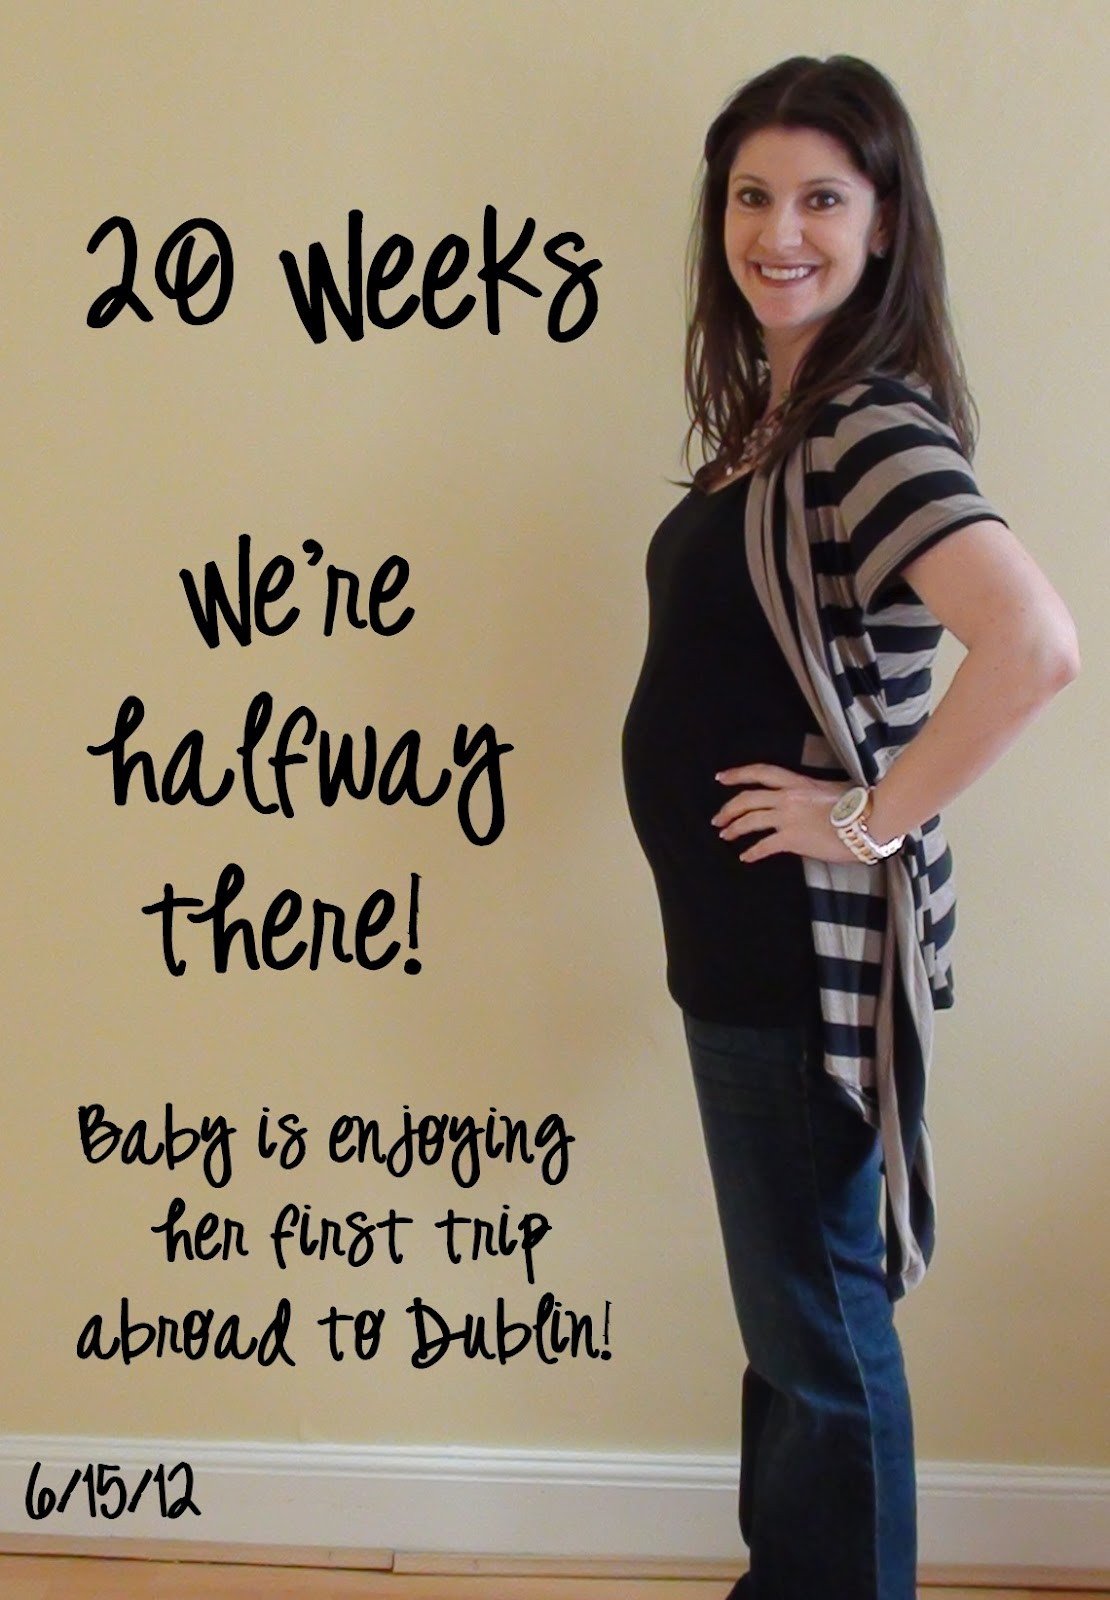 The Angioni Family: 20 Weeks! Halfway There & Anatomy Scan